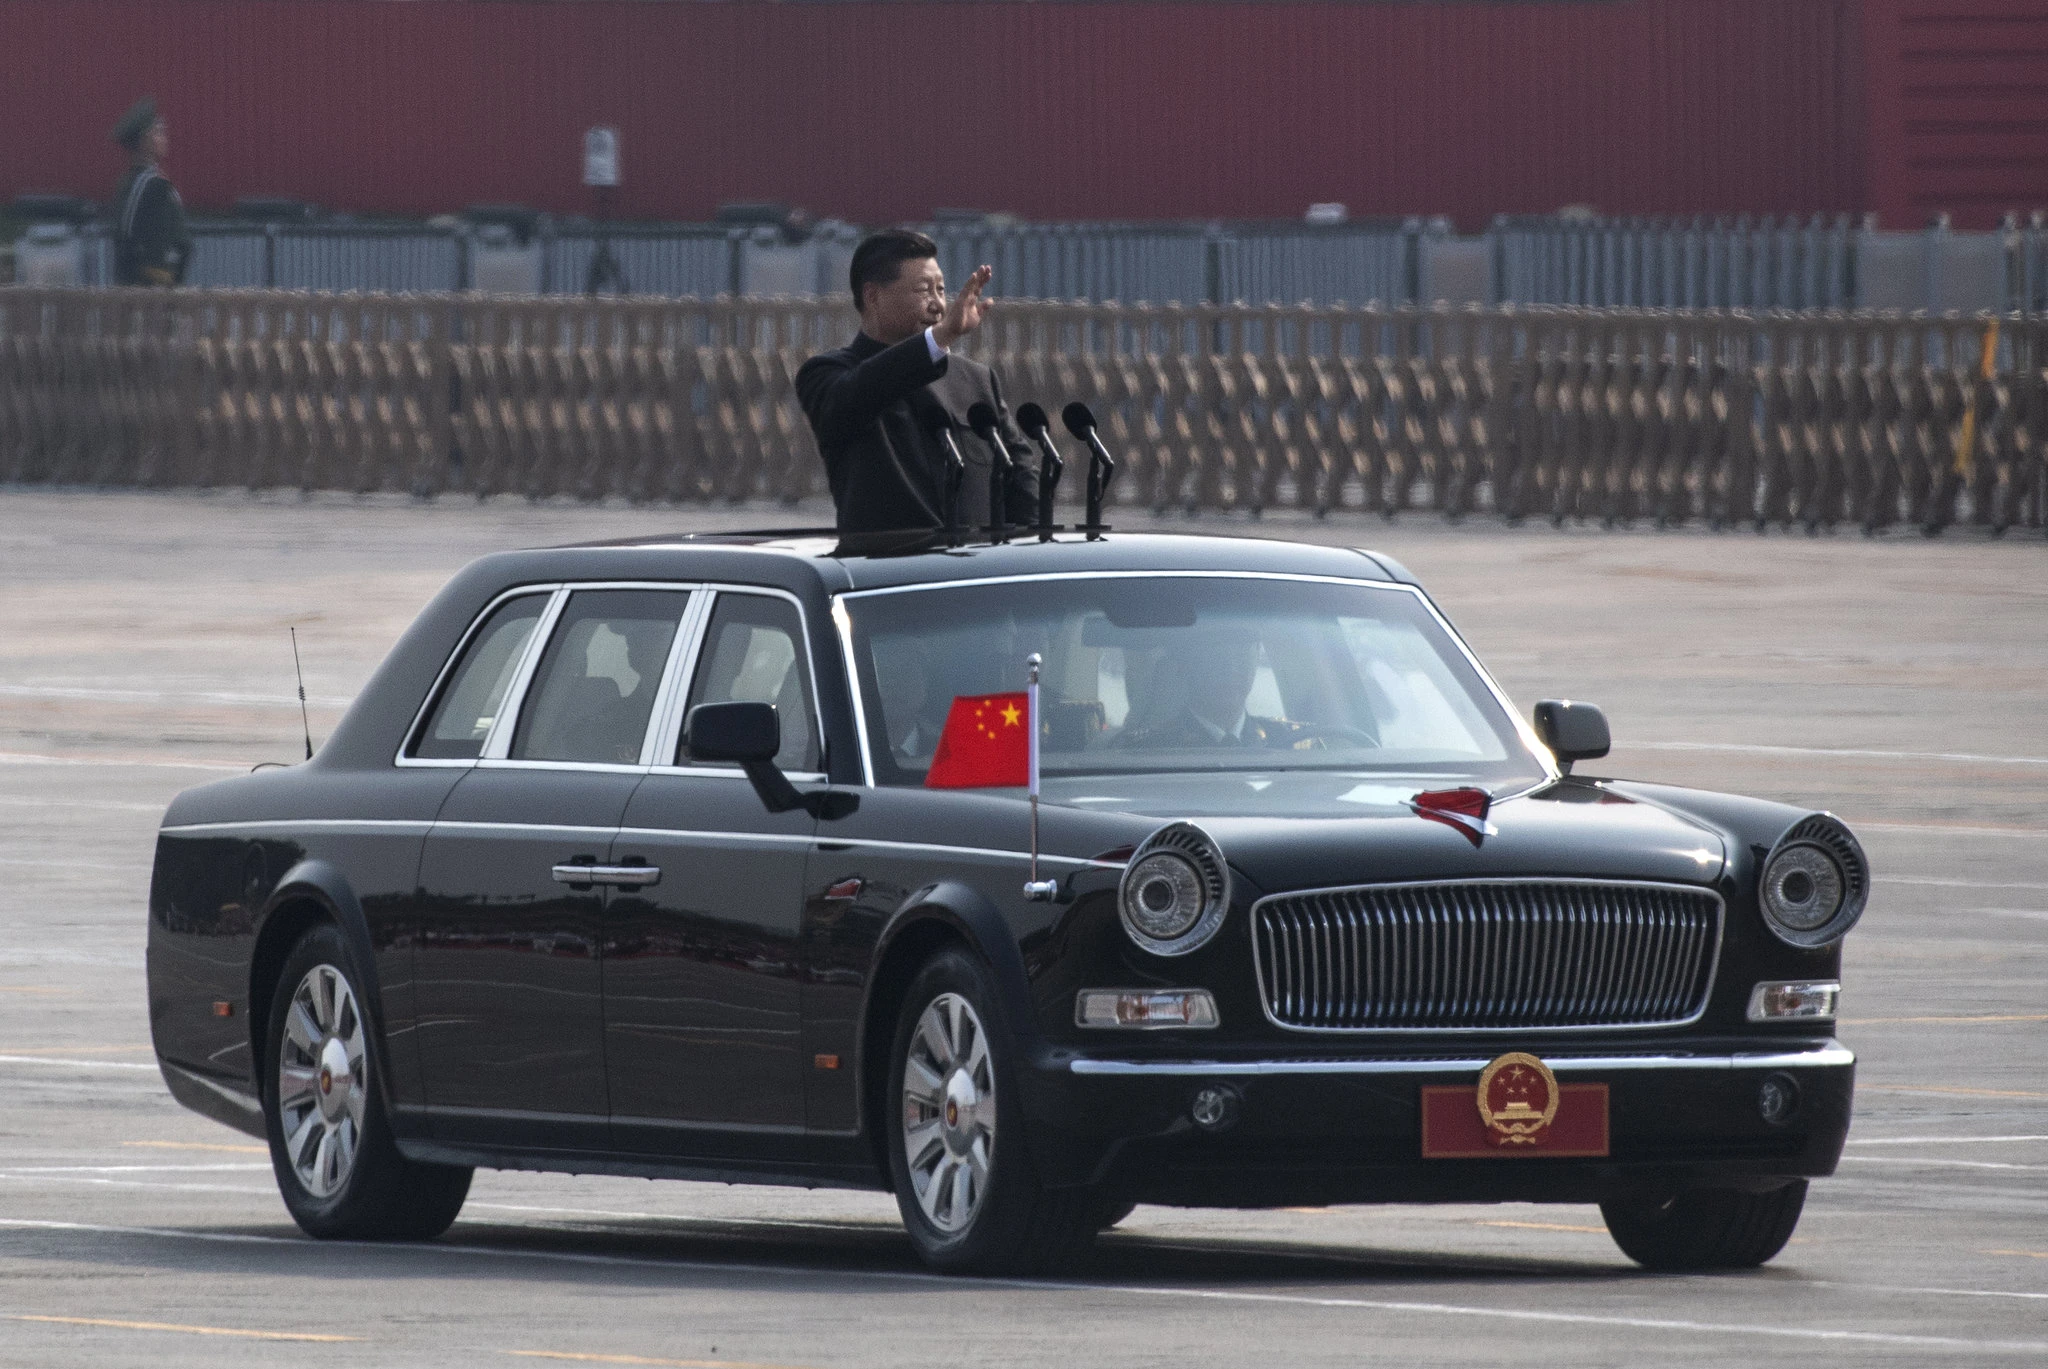 President Xi Jinping arrives at Tiananmen in a limousine to view the parade. Photo: Kevin Frayer /  Getty Images